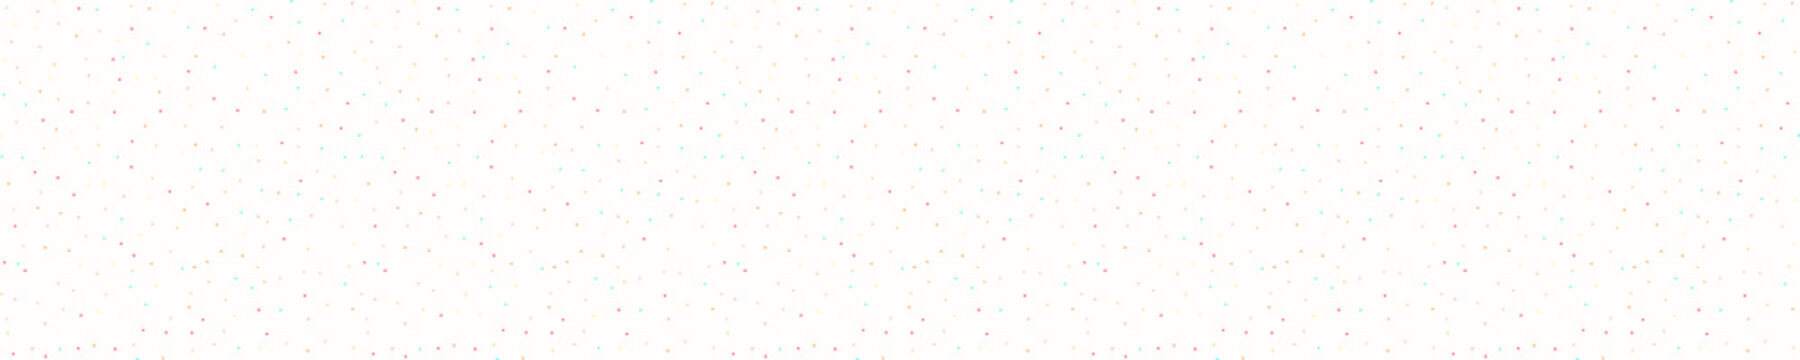 Sparse confetti dotty border texture seamless background. Tiny colored flecked sprinkles ribbon trim edge banner. Modern cute falling speckle pattern. Japanese kawaii minimal digital party washi tape.